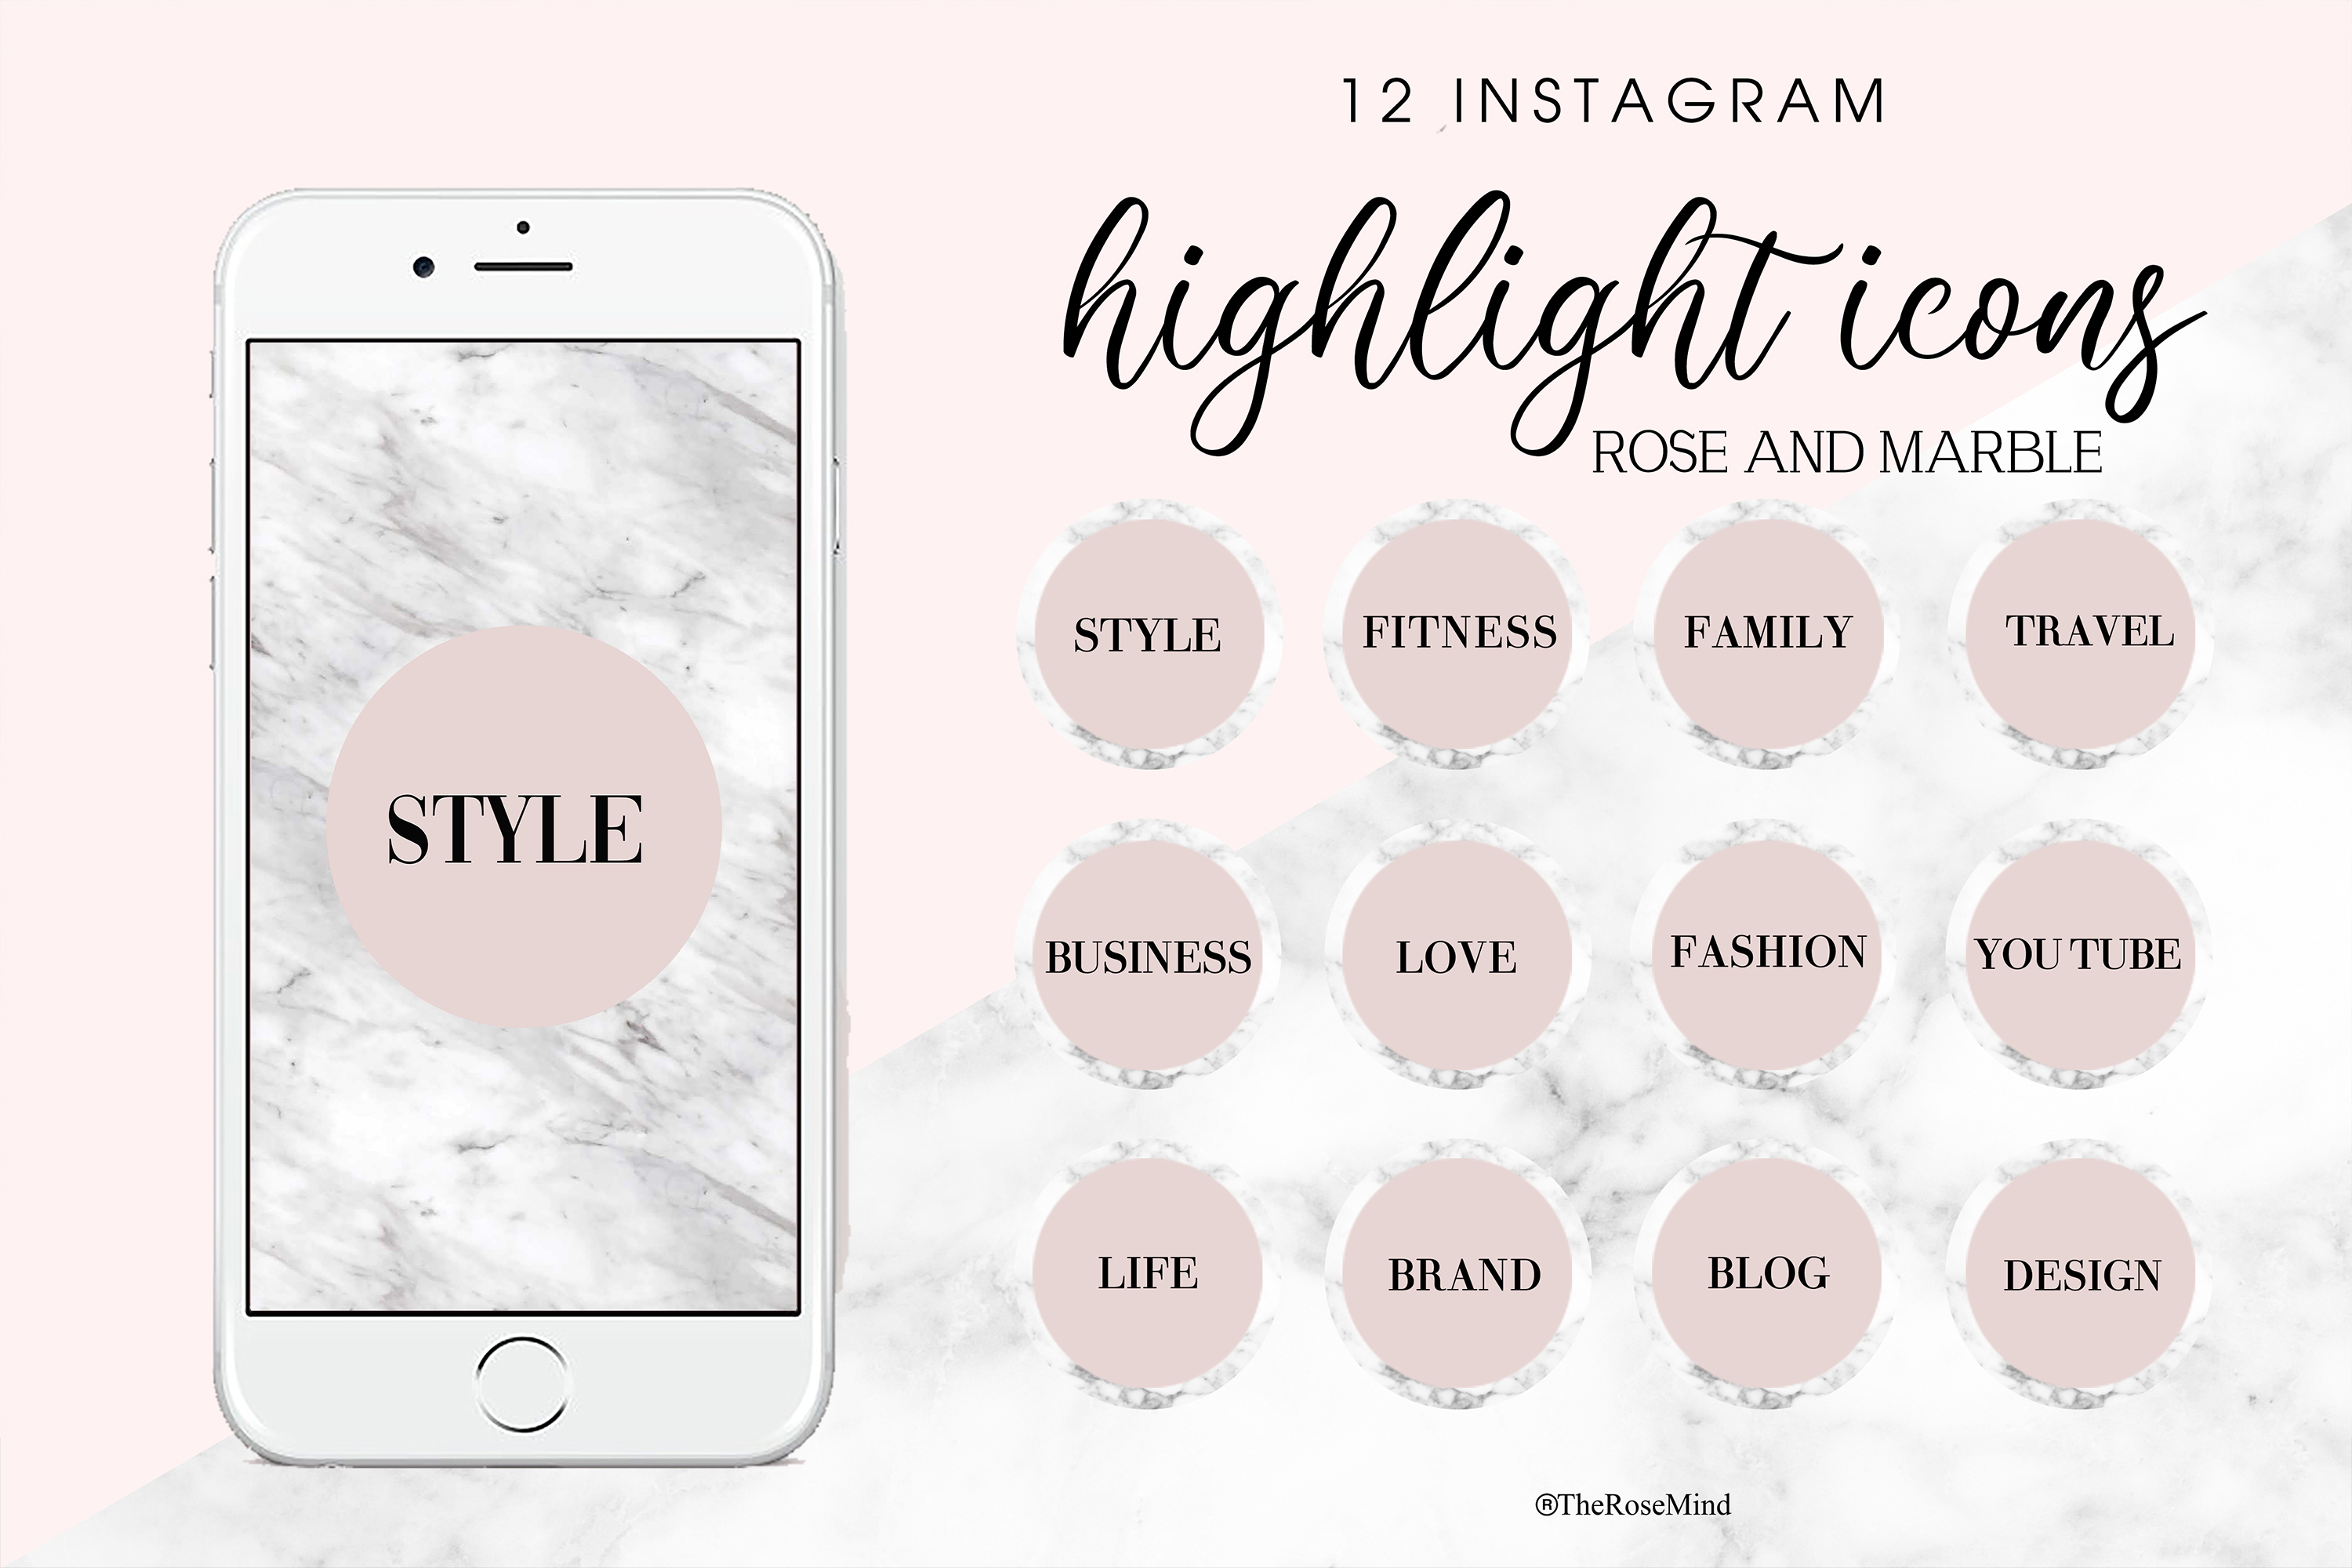 Download Free Highlight Icons 12 Instagram Icons Graphic By Therosemind for Cricut Explore, Silhouette and other cutting machines.